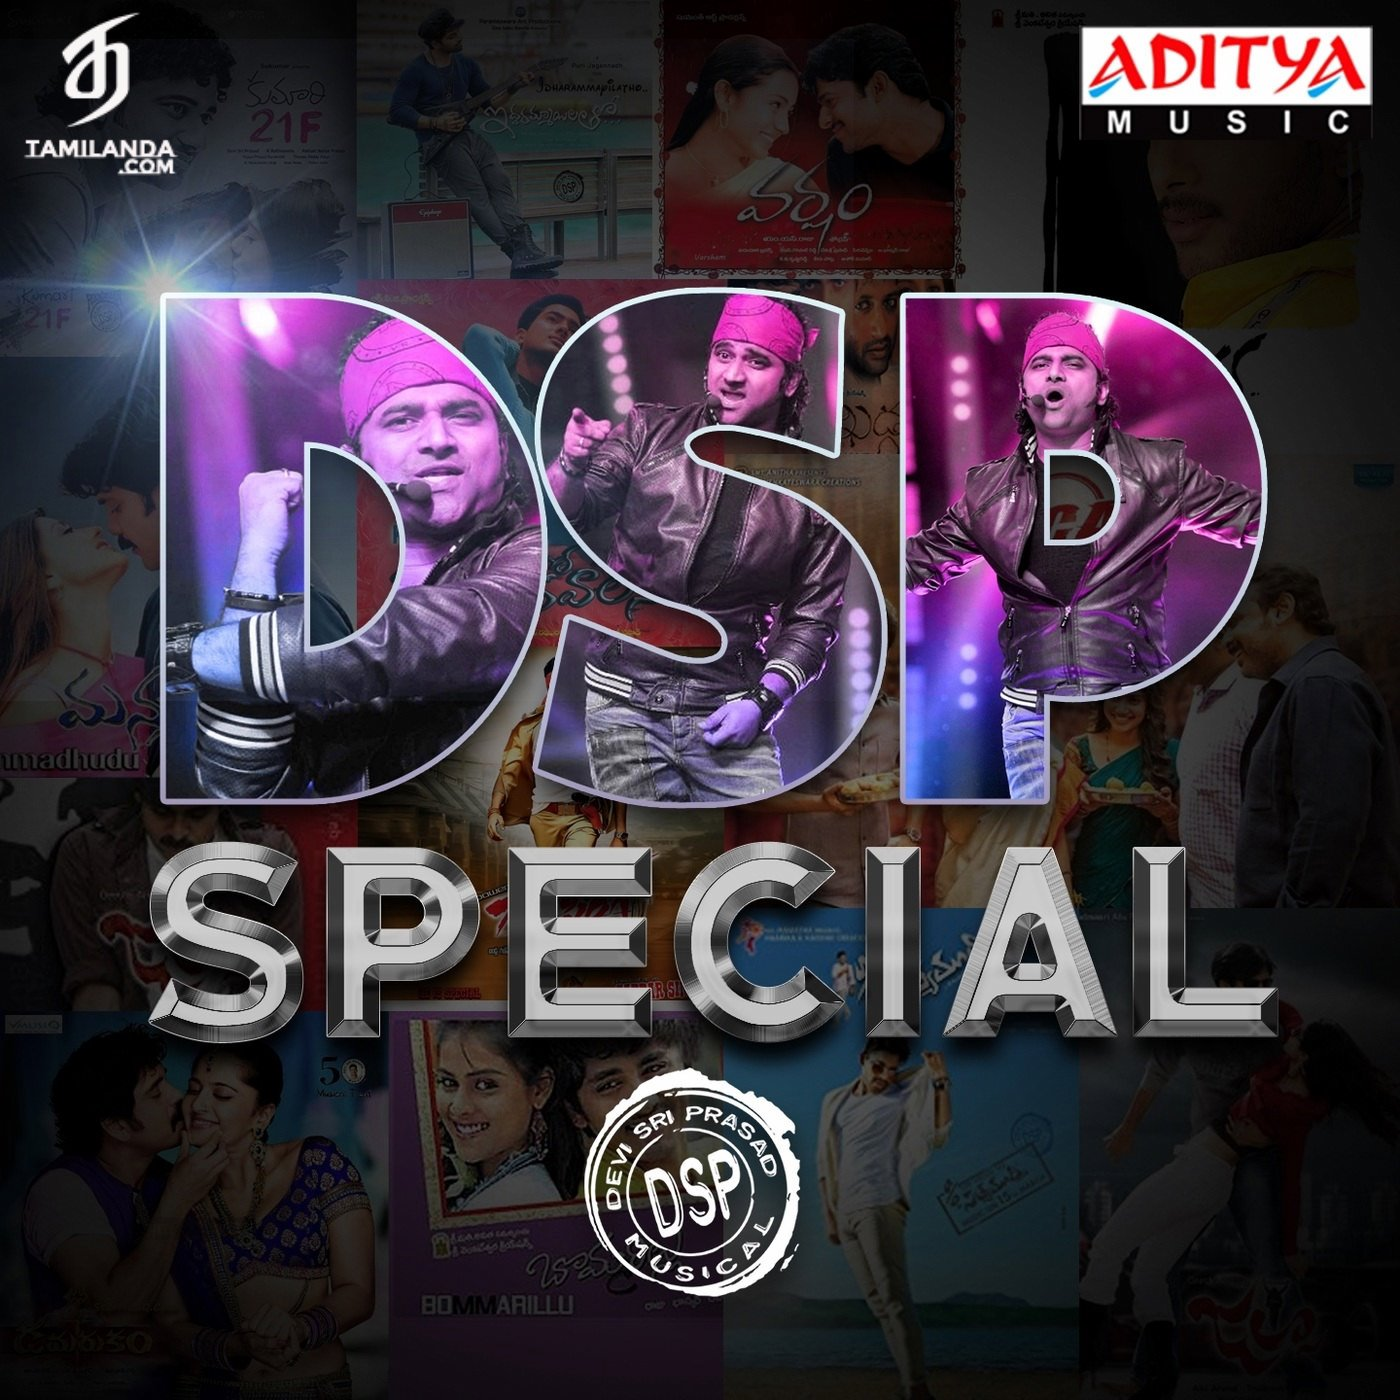 DSP Special FLAC Songs [35 Tracks]